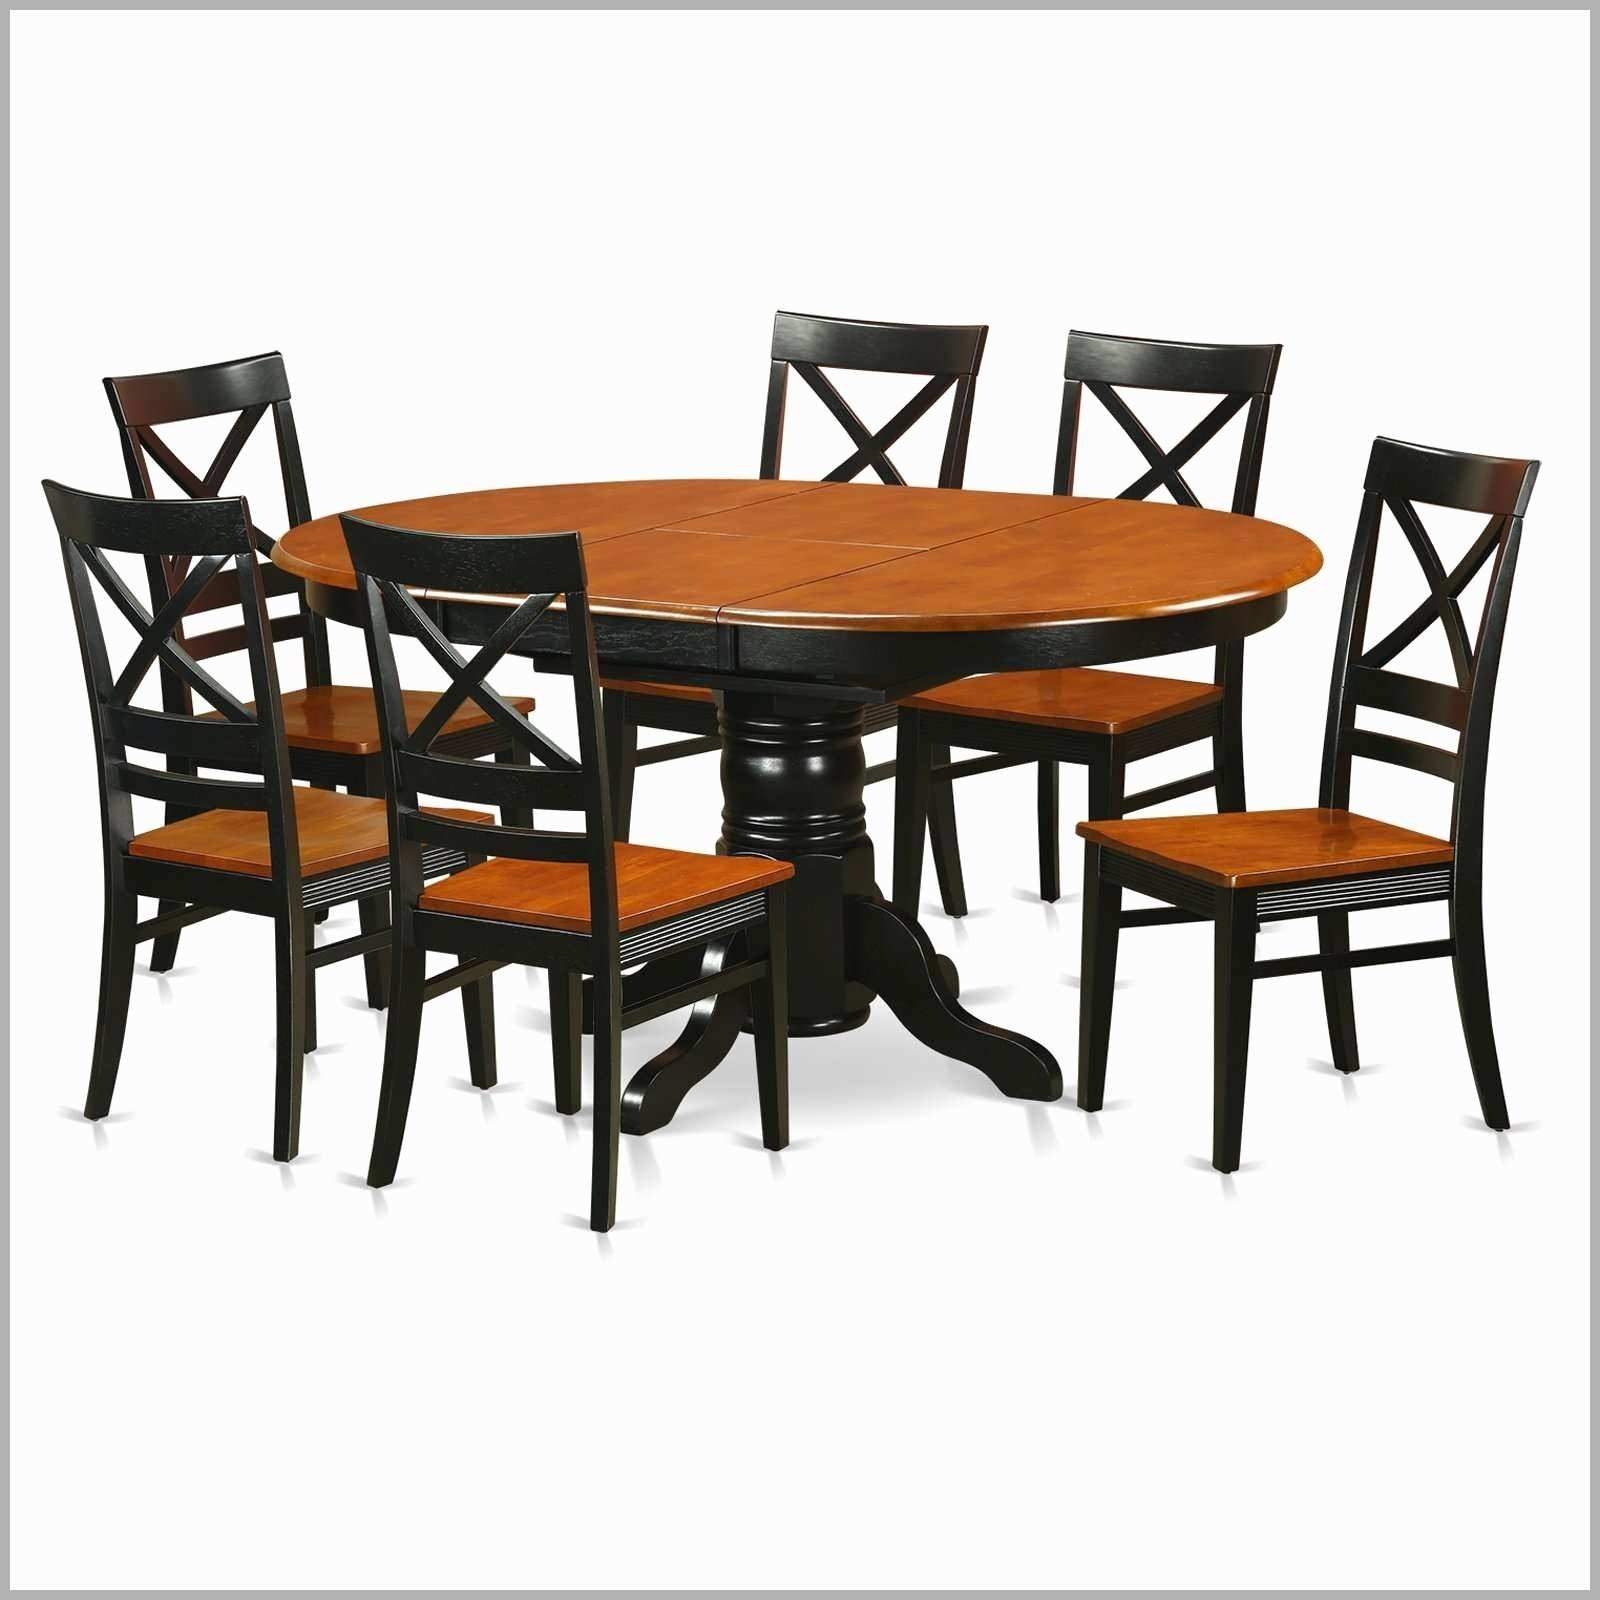 Trendy Jaxon Grey 5 Piece Round Extension Dining Sets With Wood Chairs In Ashton Round Pedestal Dining Table Elegant Kitchen Dining Area (View 17 of 25)